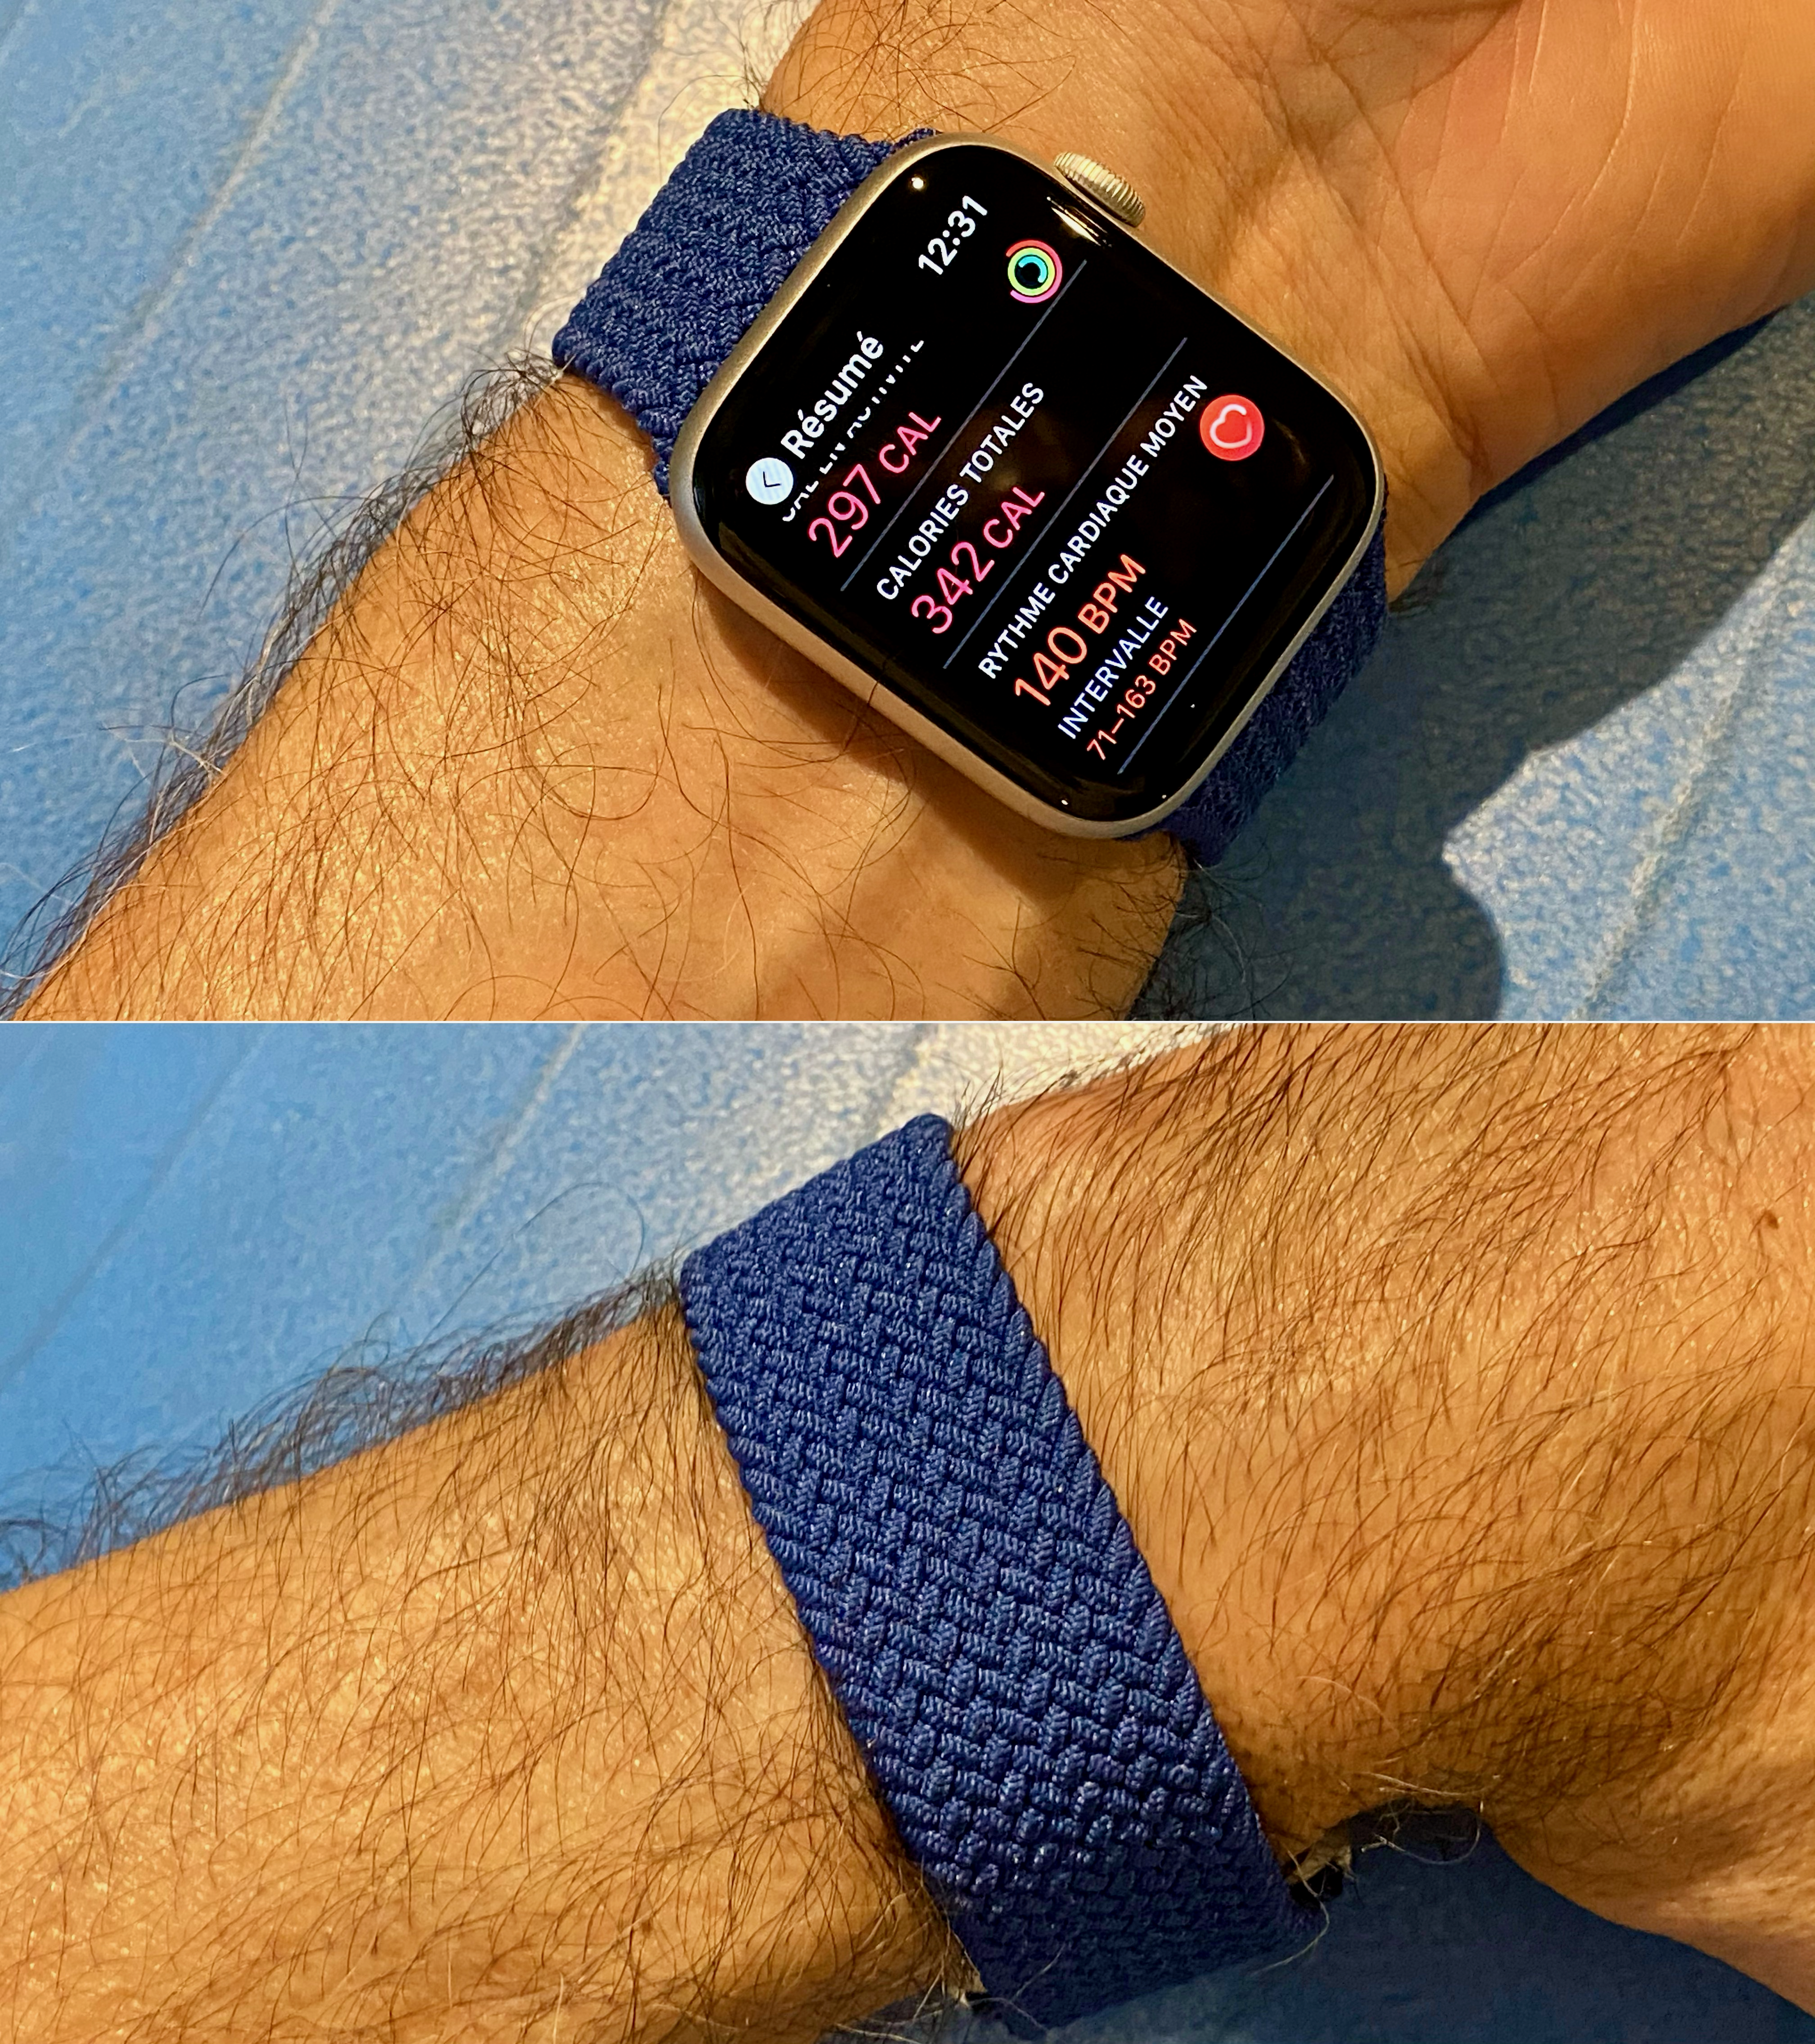 A different way to wear the Apple Watch